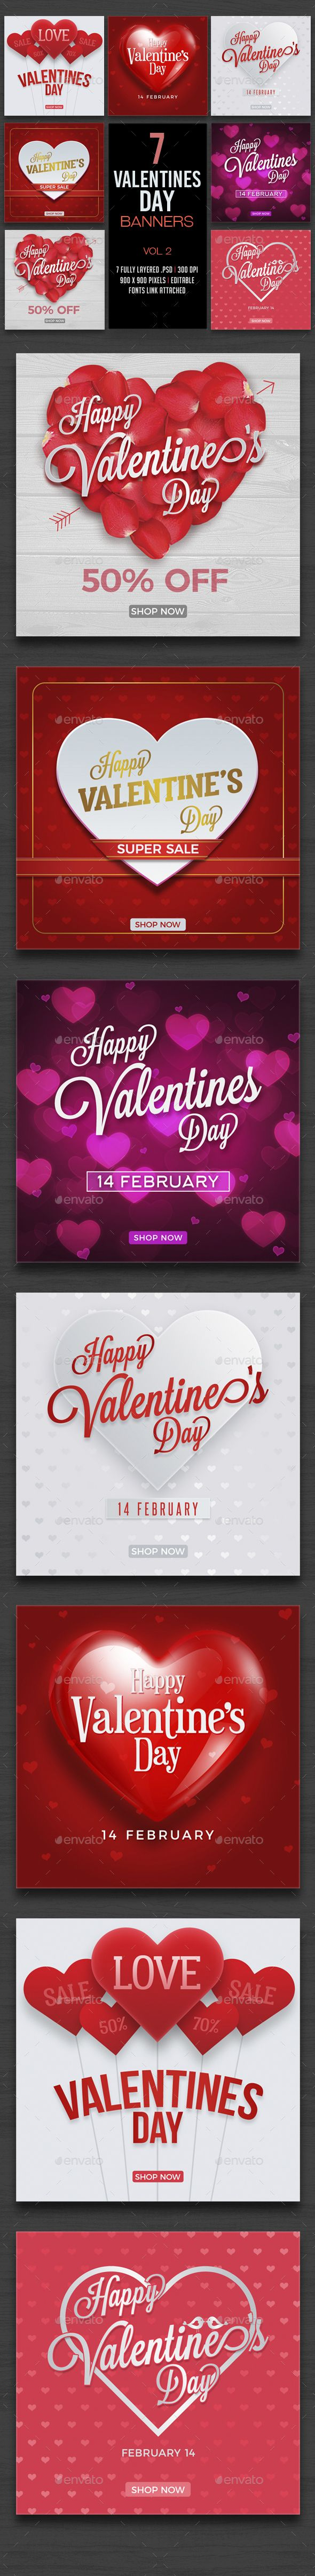 Valentines Day Banner Set Design Template Vol2 - Banners & Ads Web Elements Design Template PSD. Download here:https://graphicriver.net/item/valentines-day-banner-set-vol2/19253257?ref=yinkira